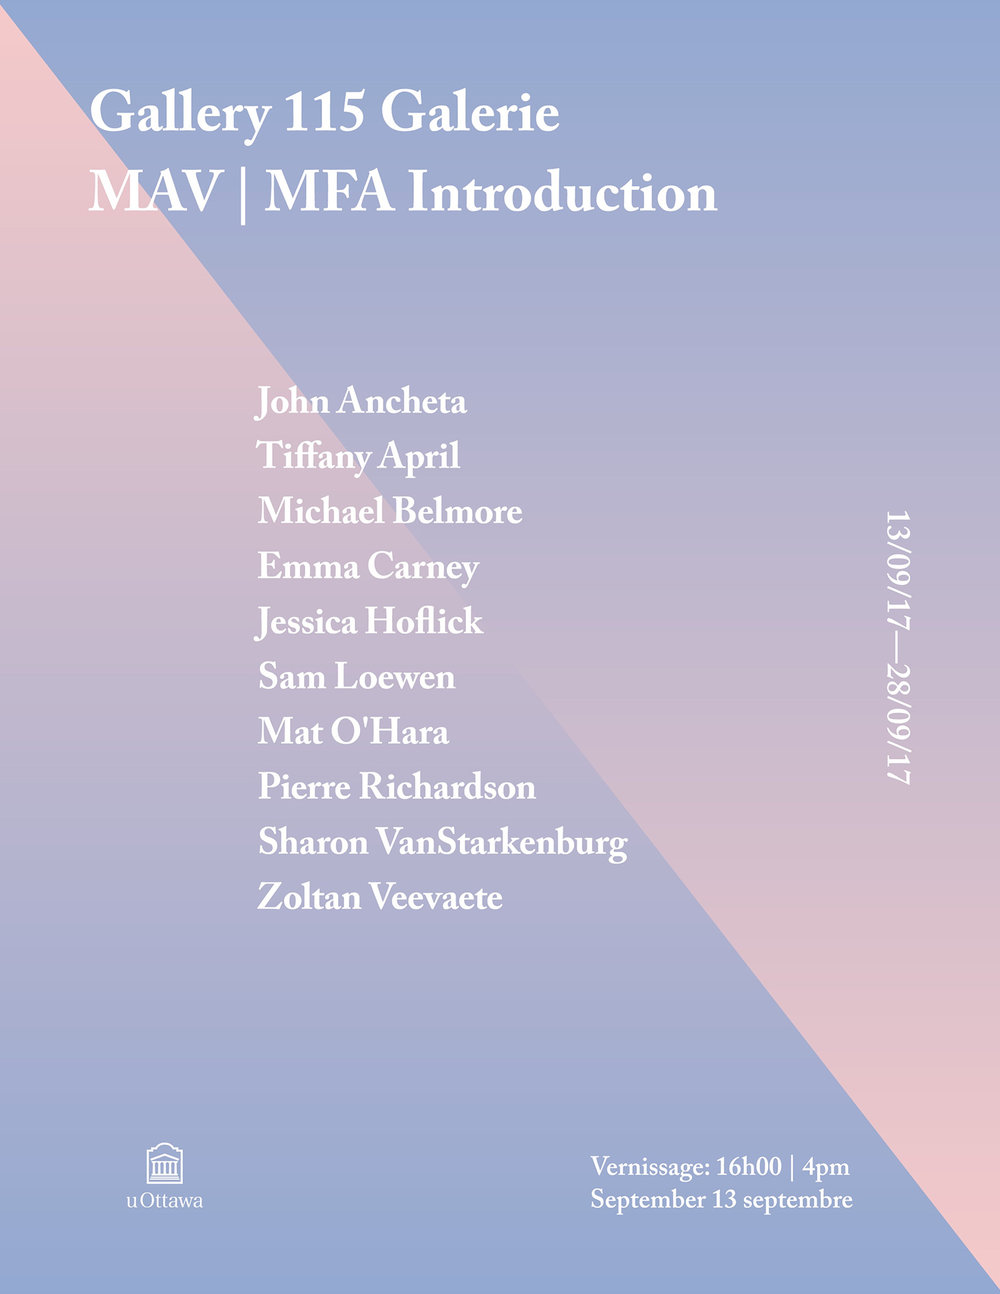 MFA_Introduction-Exhibition_Poster_Final.jpg